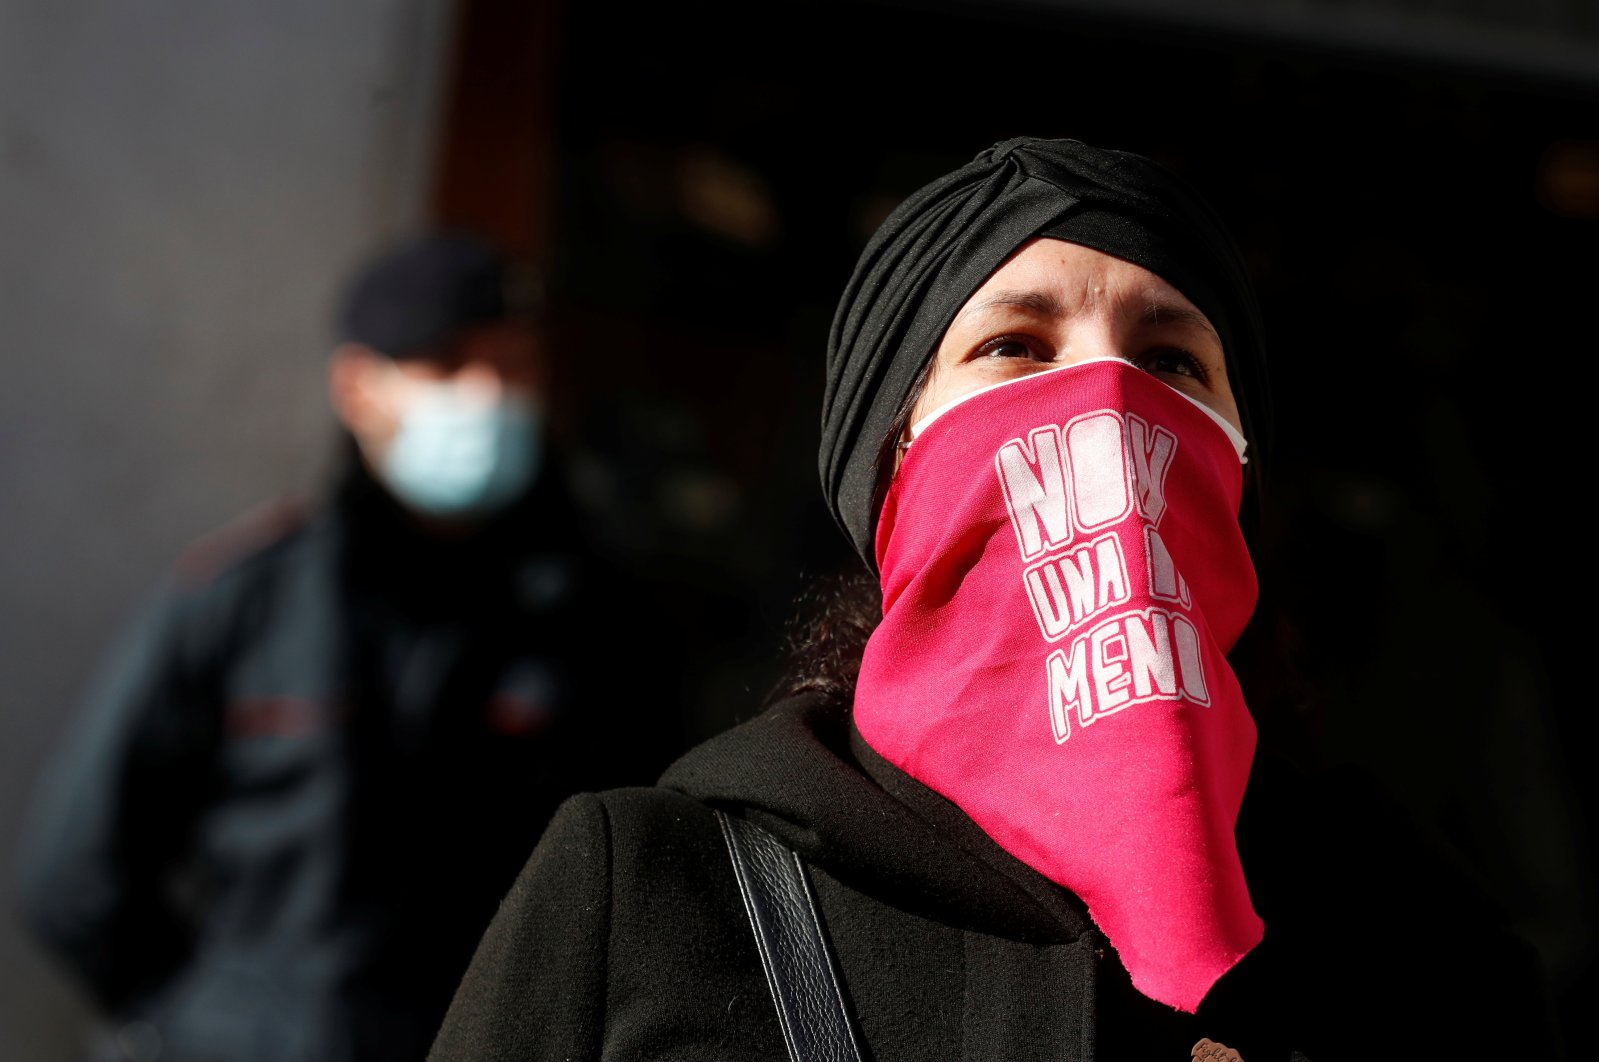 A woman attends a demonstration to mark the International Day for the Elimination of Violence against Women, in Rome, Italy, Nov. 25, 2020. (Reuters Photo)